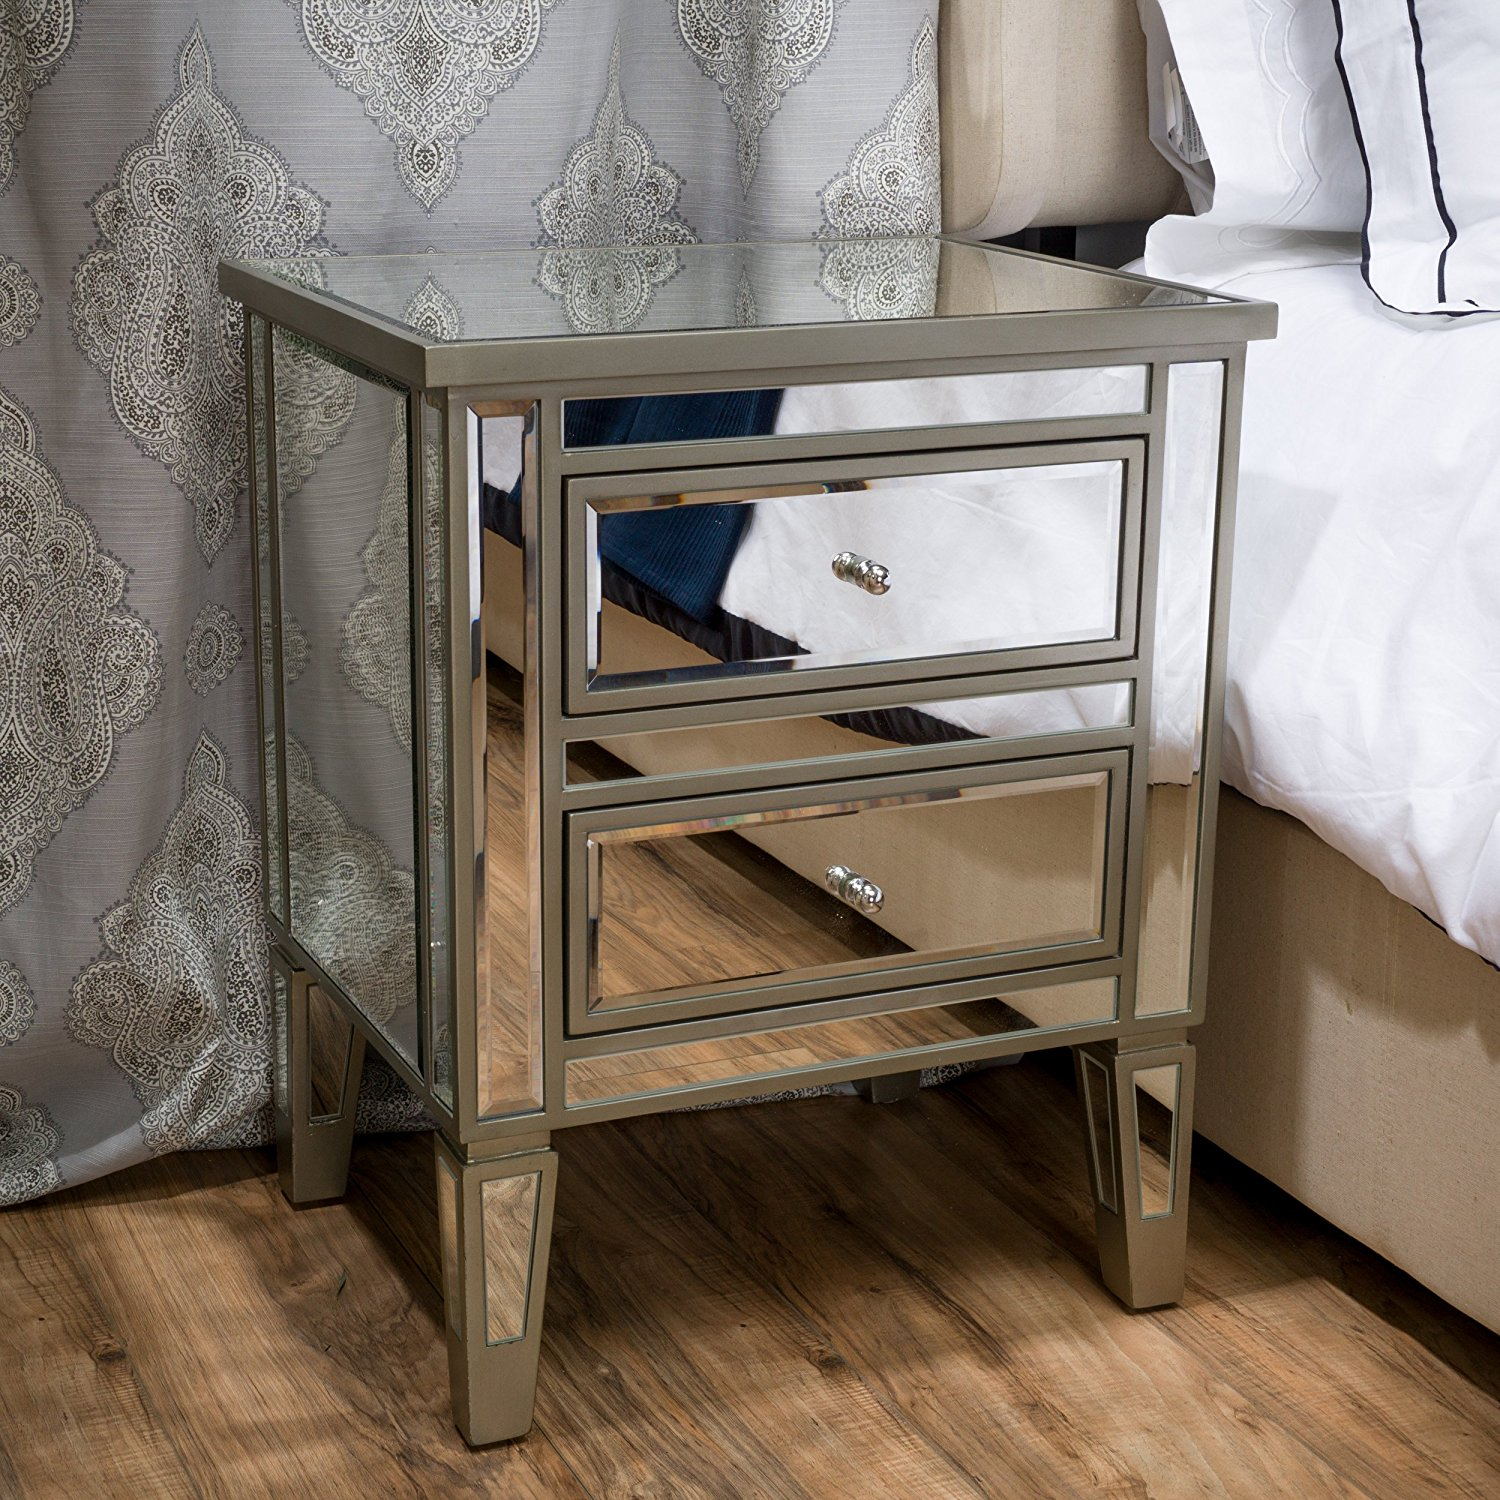 small mirrored accent table meganburford ideas for mirror end mirage dorm room ping antique spindle leg side tall farmhouse oriental style lamps contemporary armchair grey drink